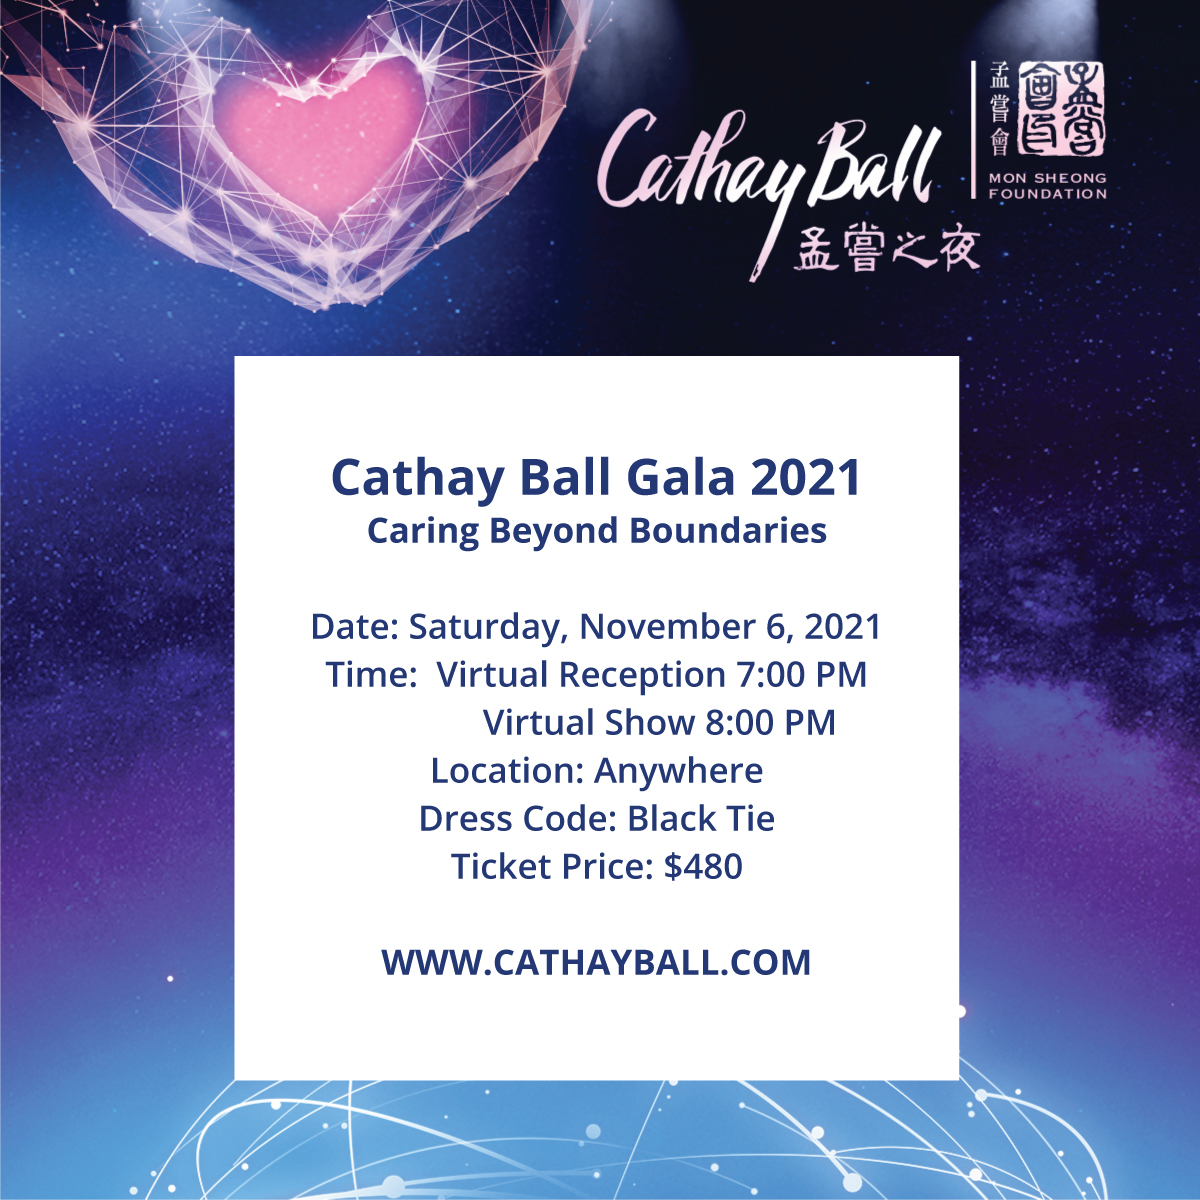 cathay ball 2021 caring without boundaries